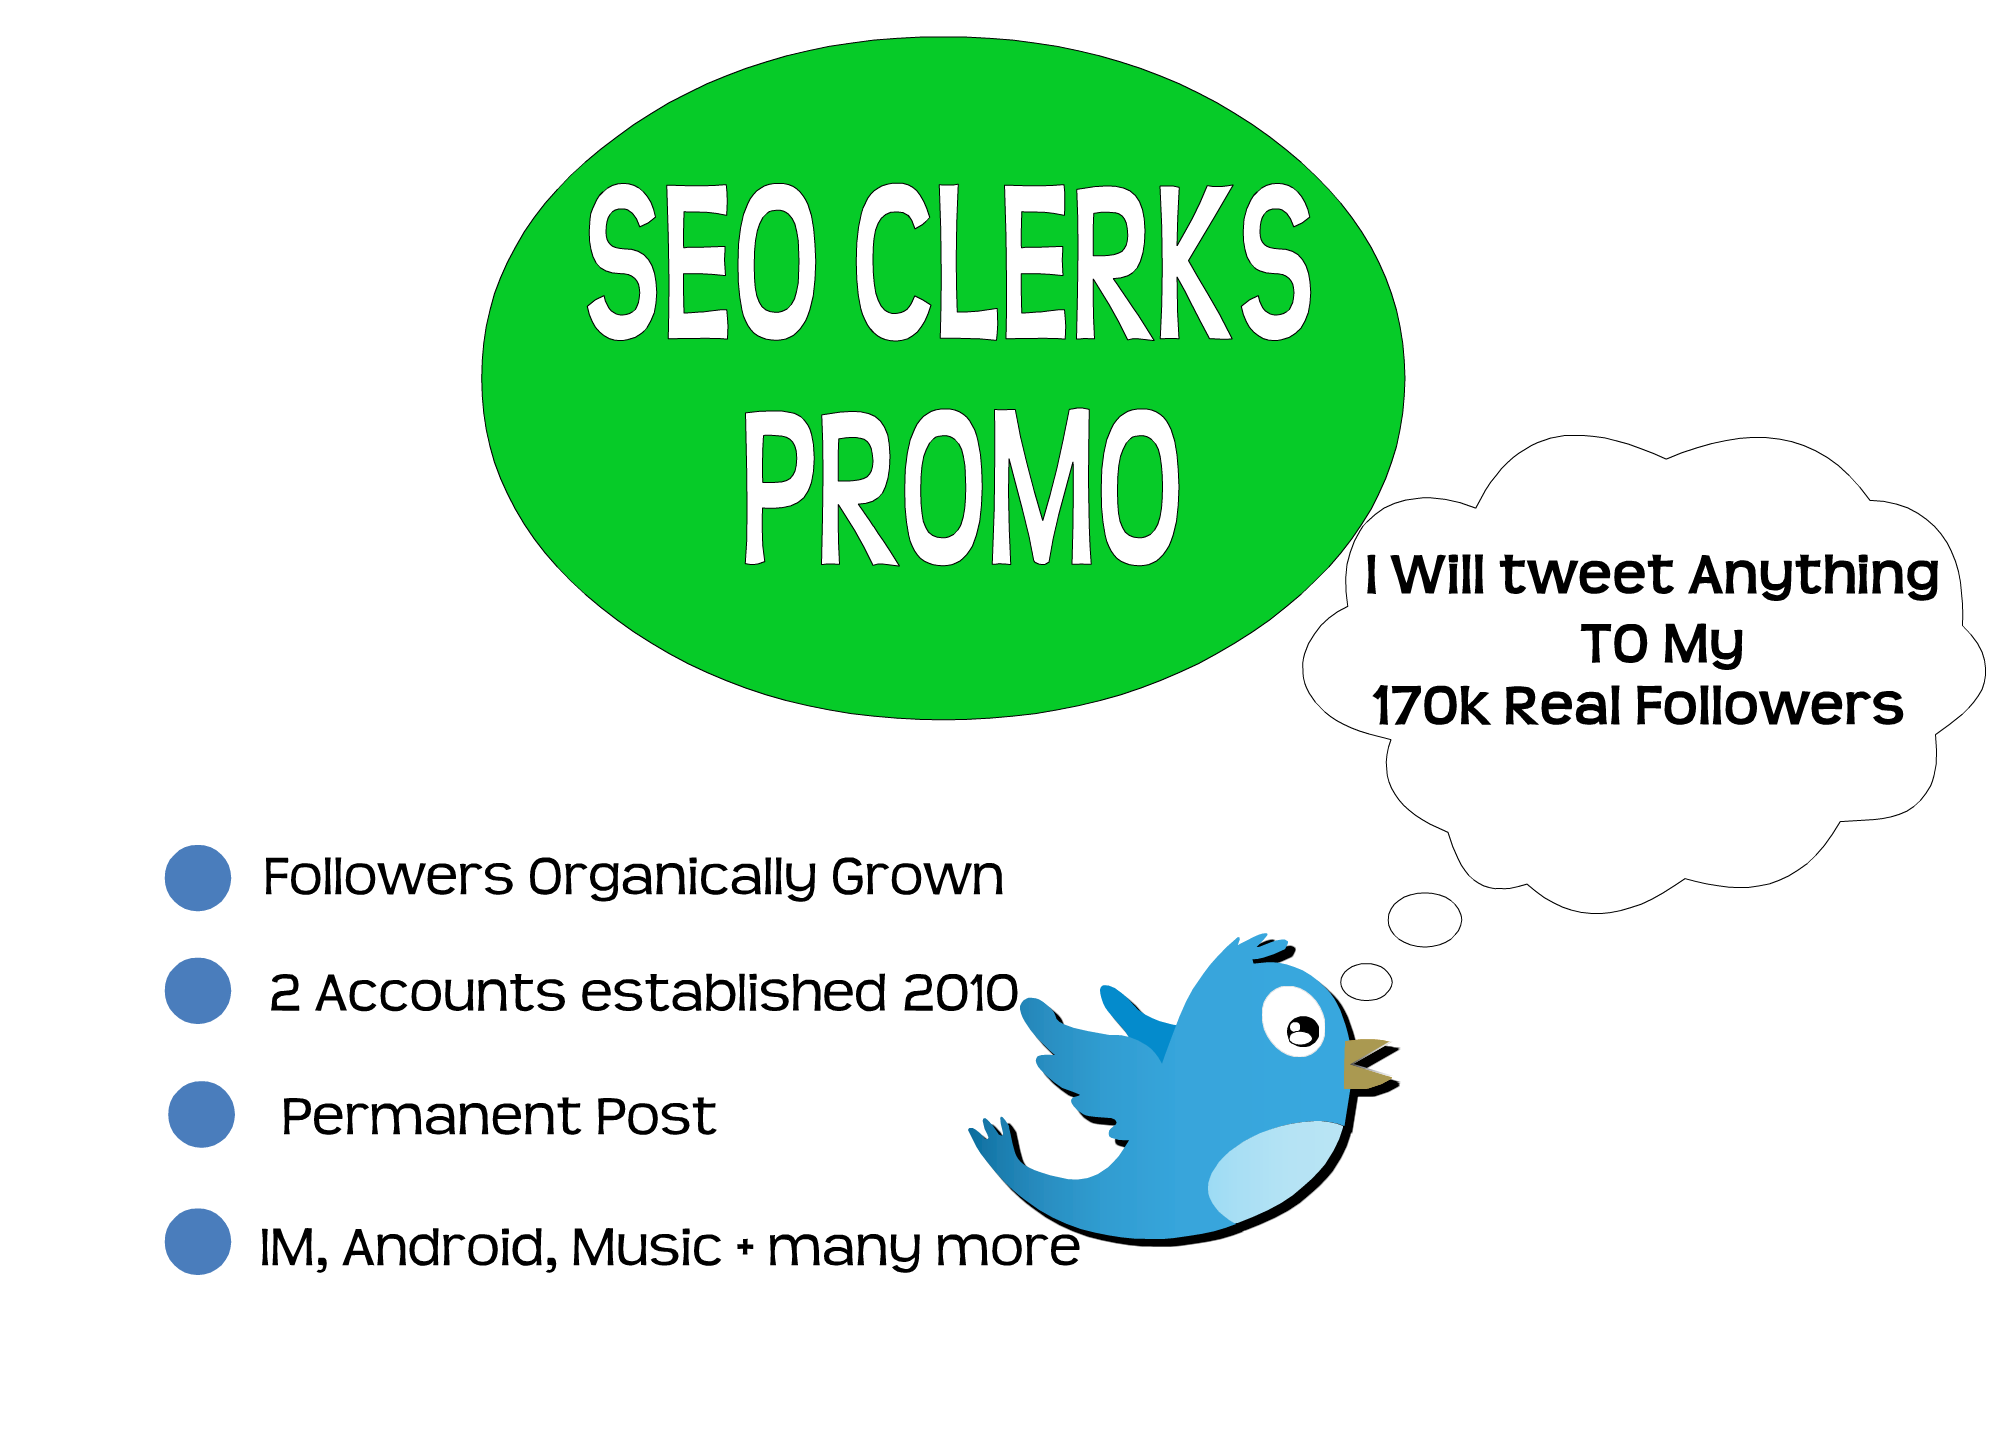 promote your Business,  product or service to 170k